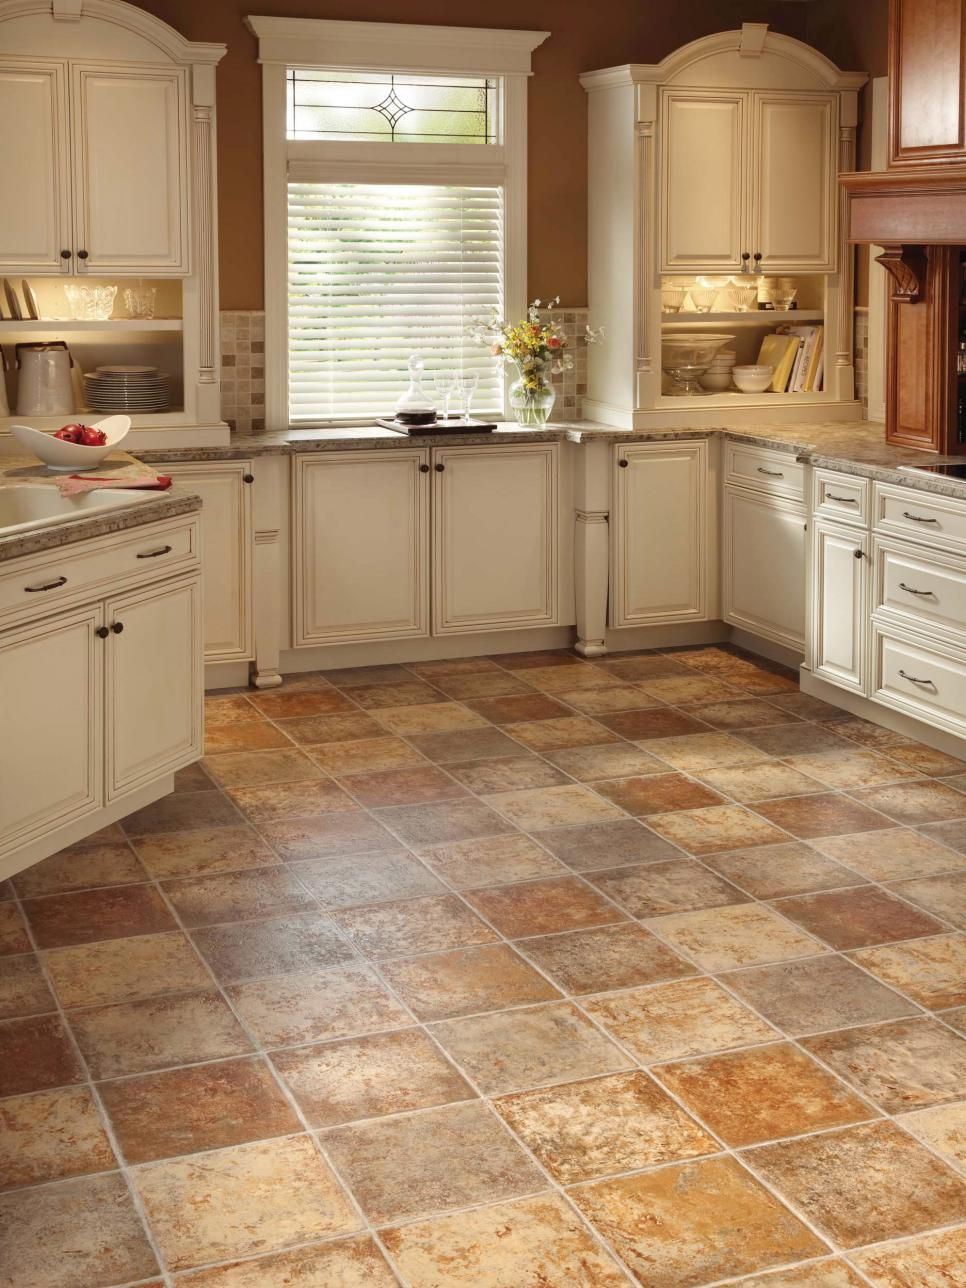 This Sheet Vinyl Floor Mimics 12 Inch Hand Set Terra Cotta Tiles The Surface Withstands Wear And Tear Is Quite Low Maintenance